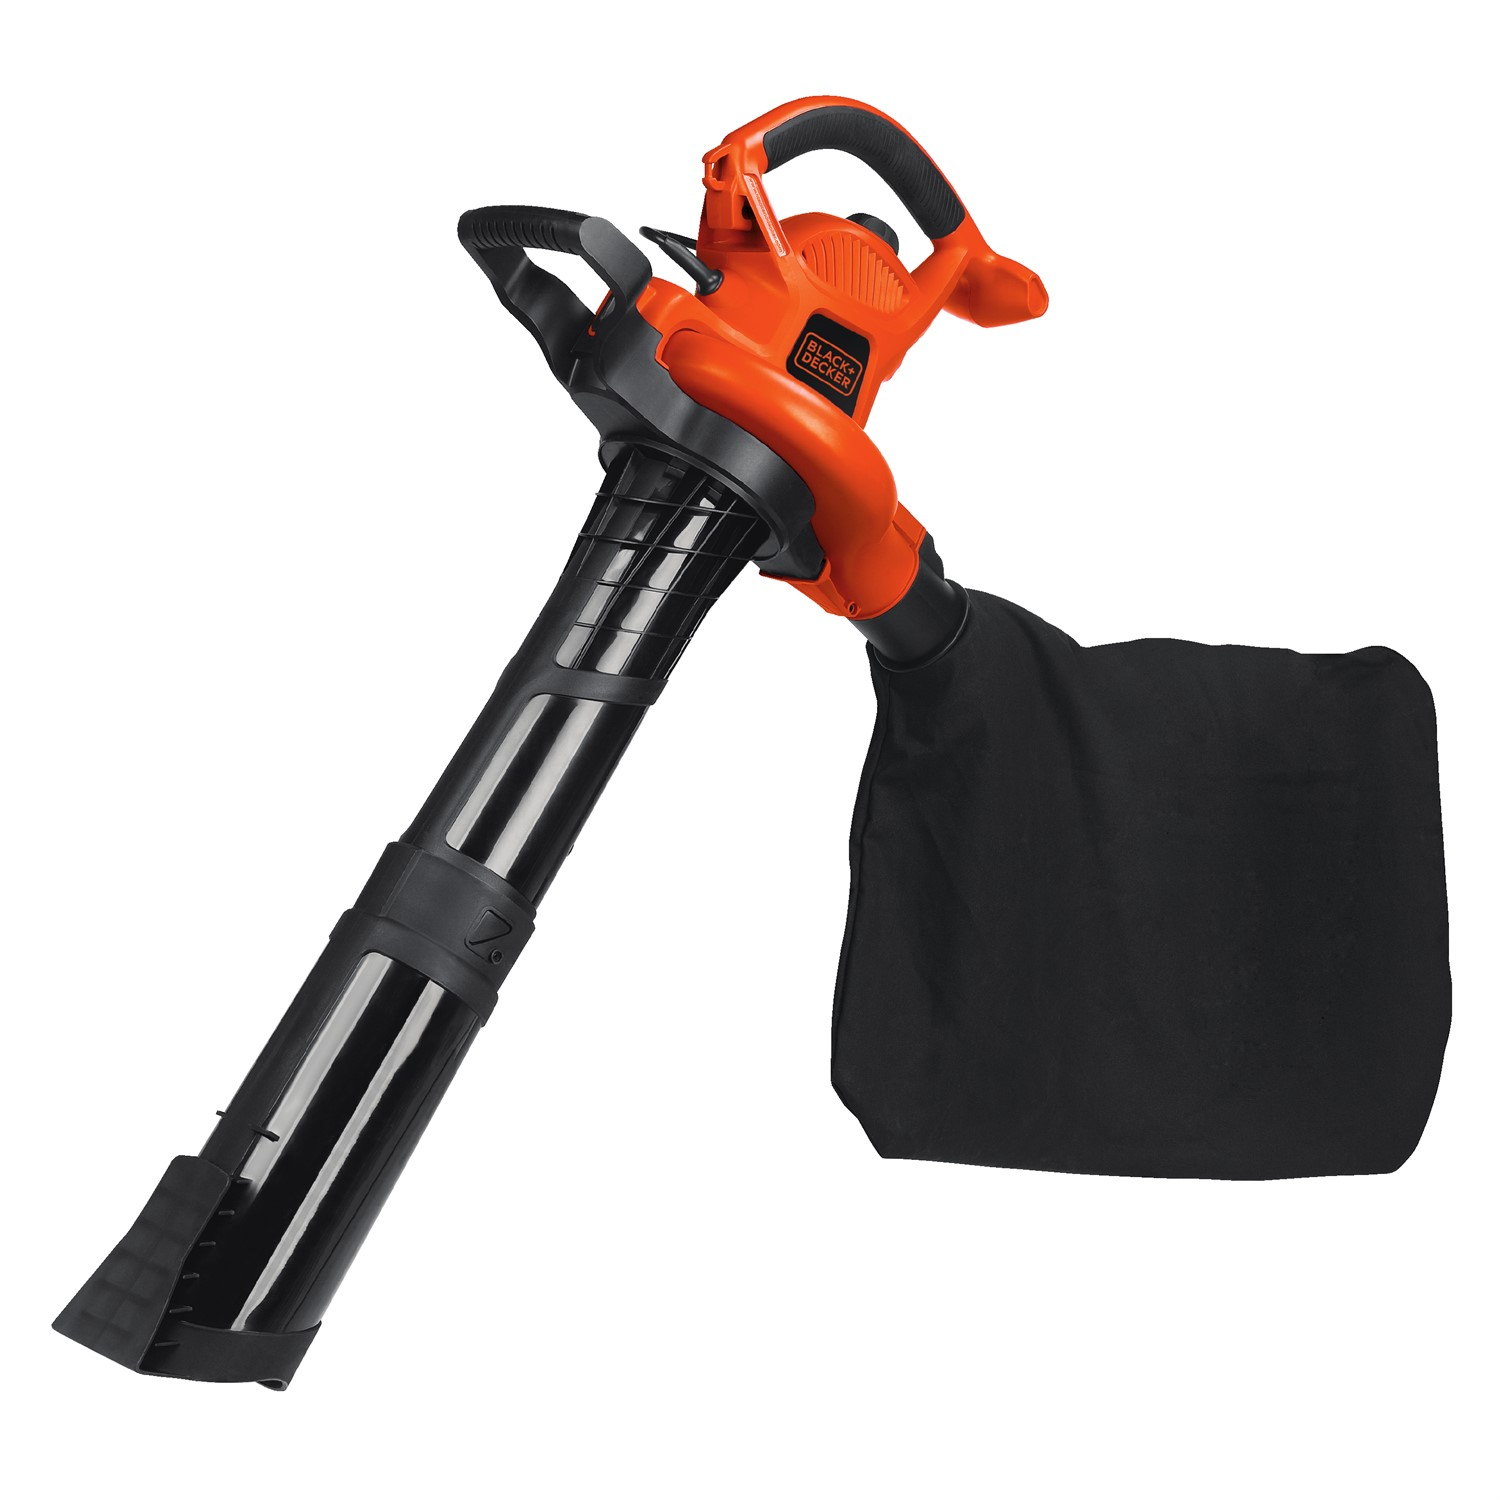 BLACK+DECKER BV6000 12Amp High Performance Blower/Vacuum/Mulcher